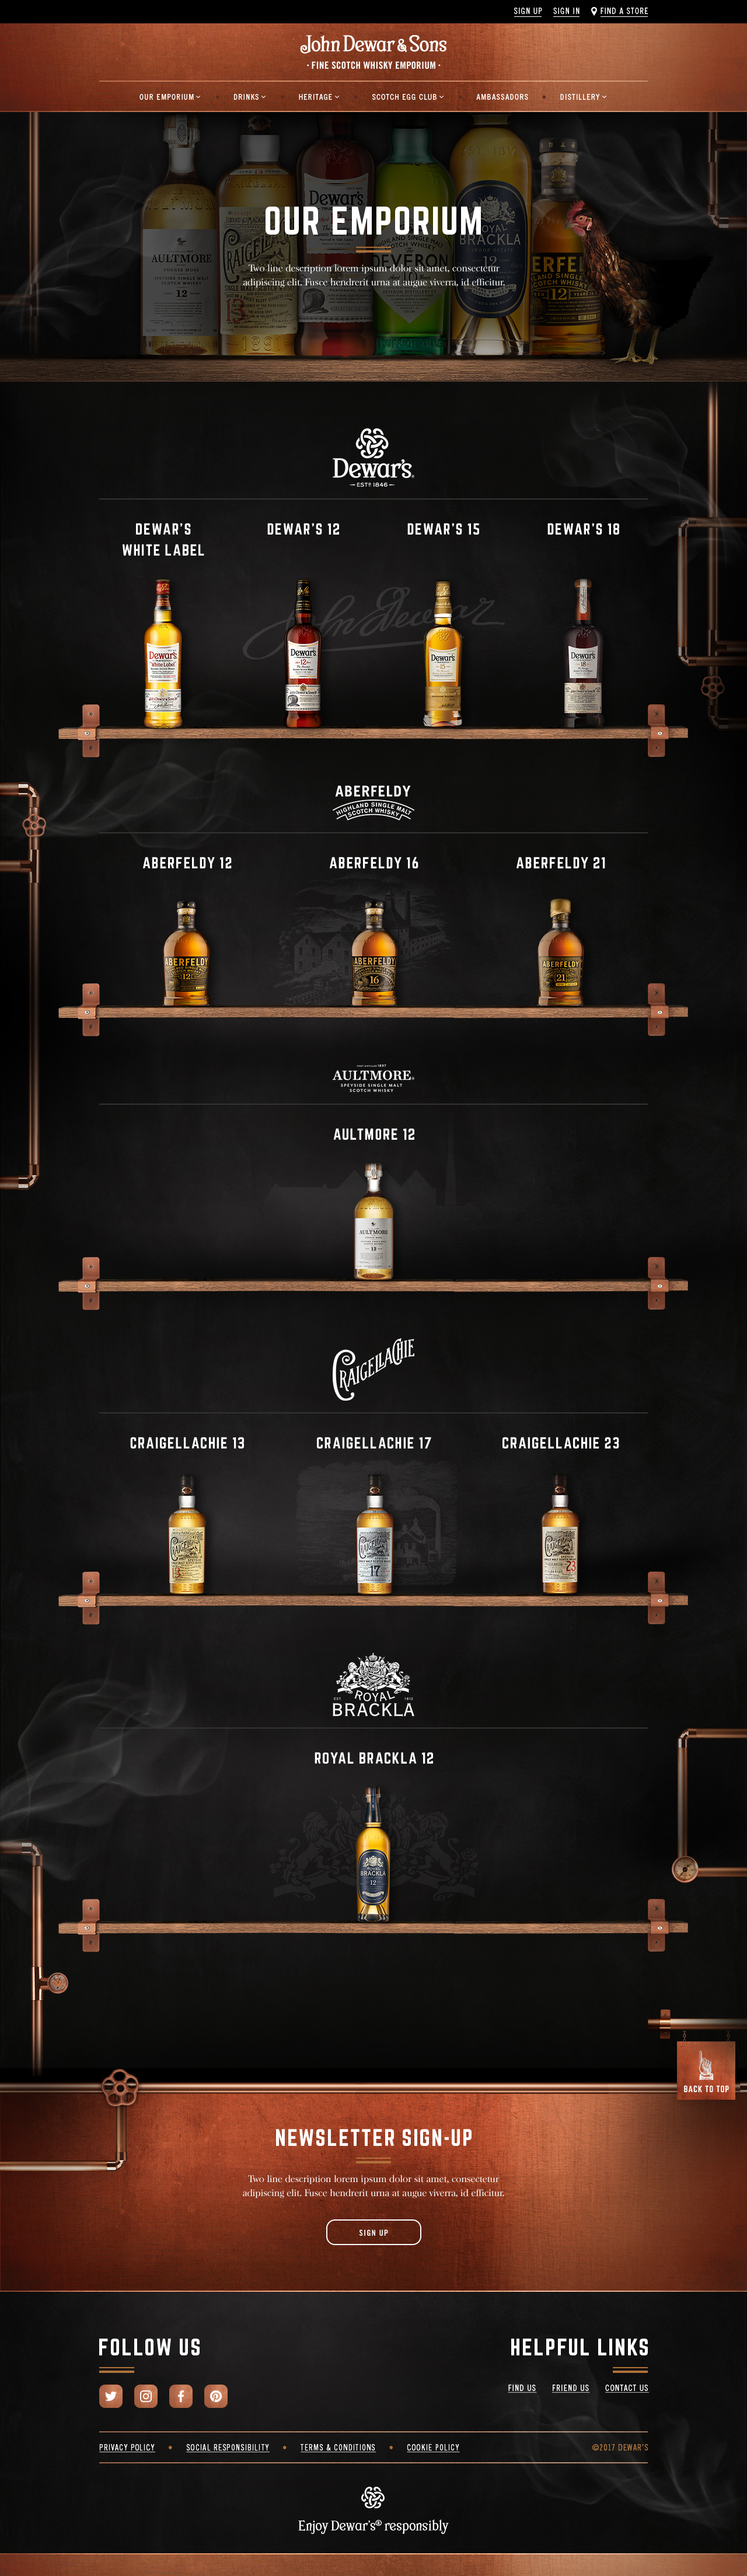 dewars-product-overview